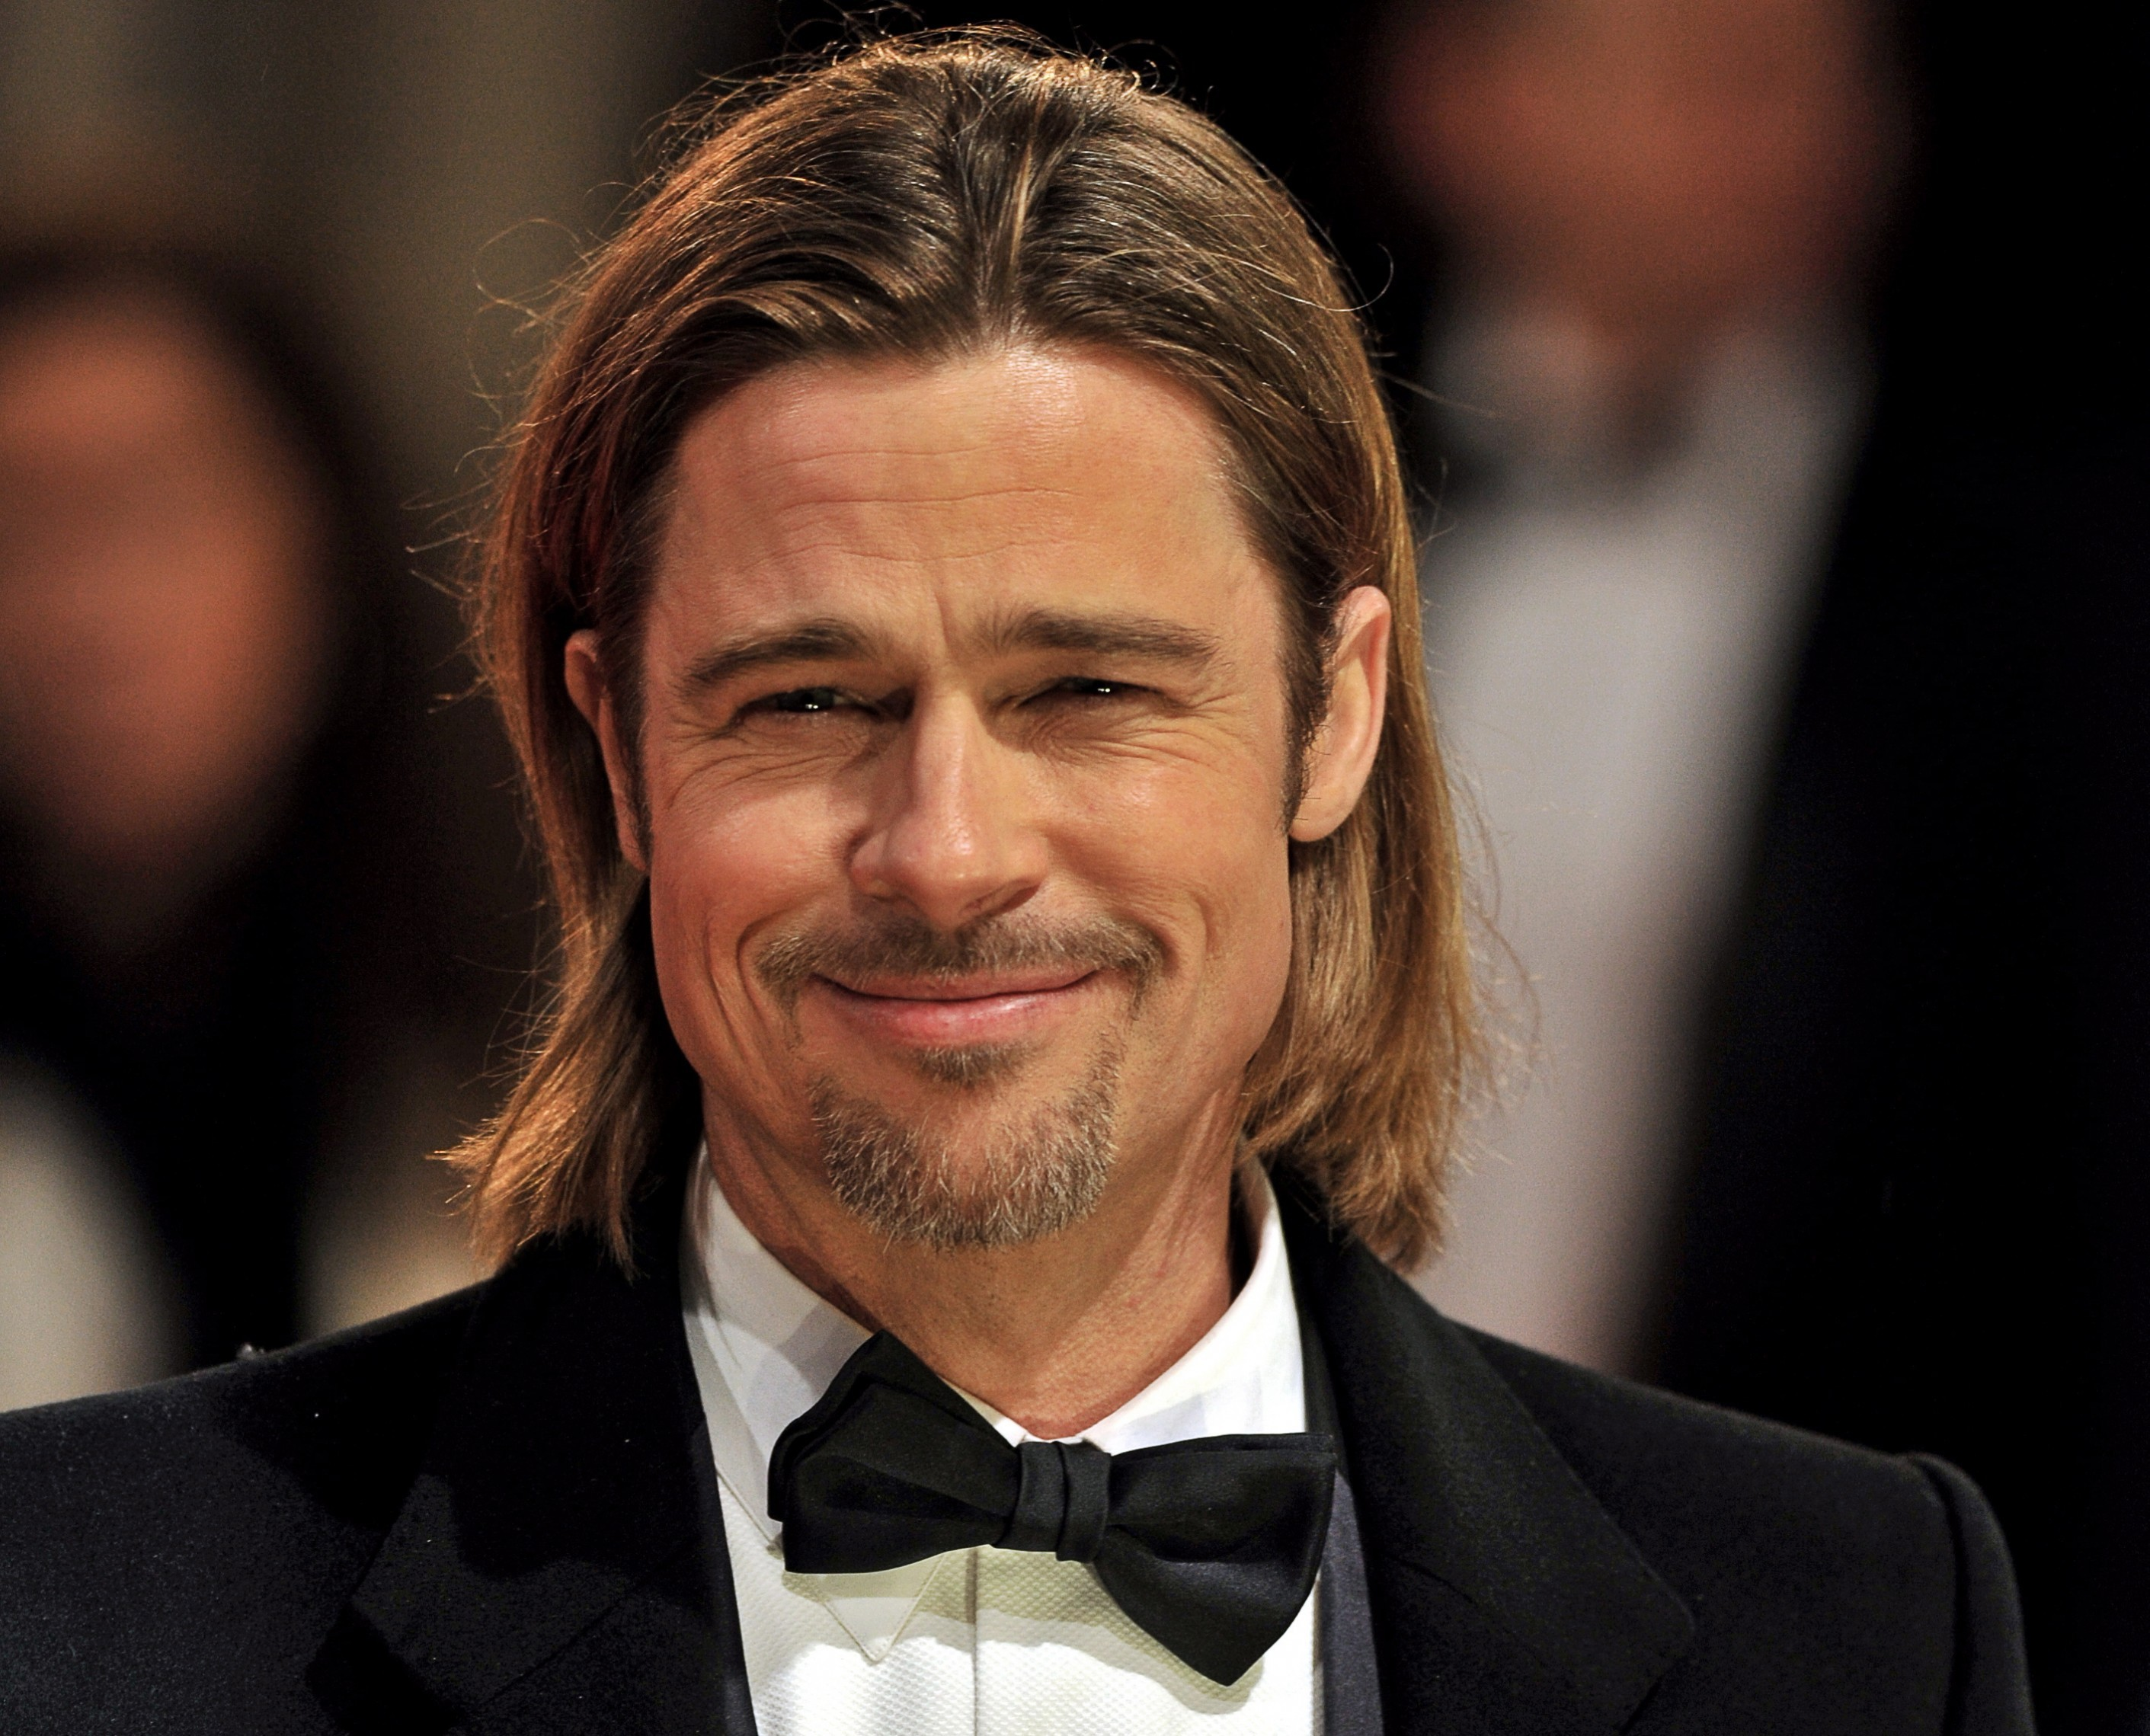 Brad Pitt Goes To War With Angelina Jolie Over Custody, Judge.